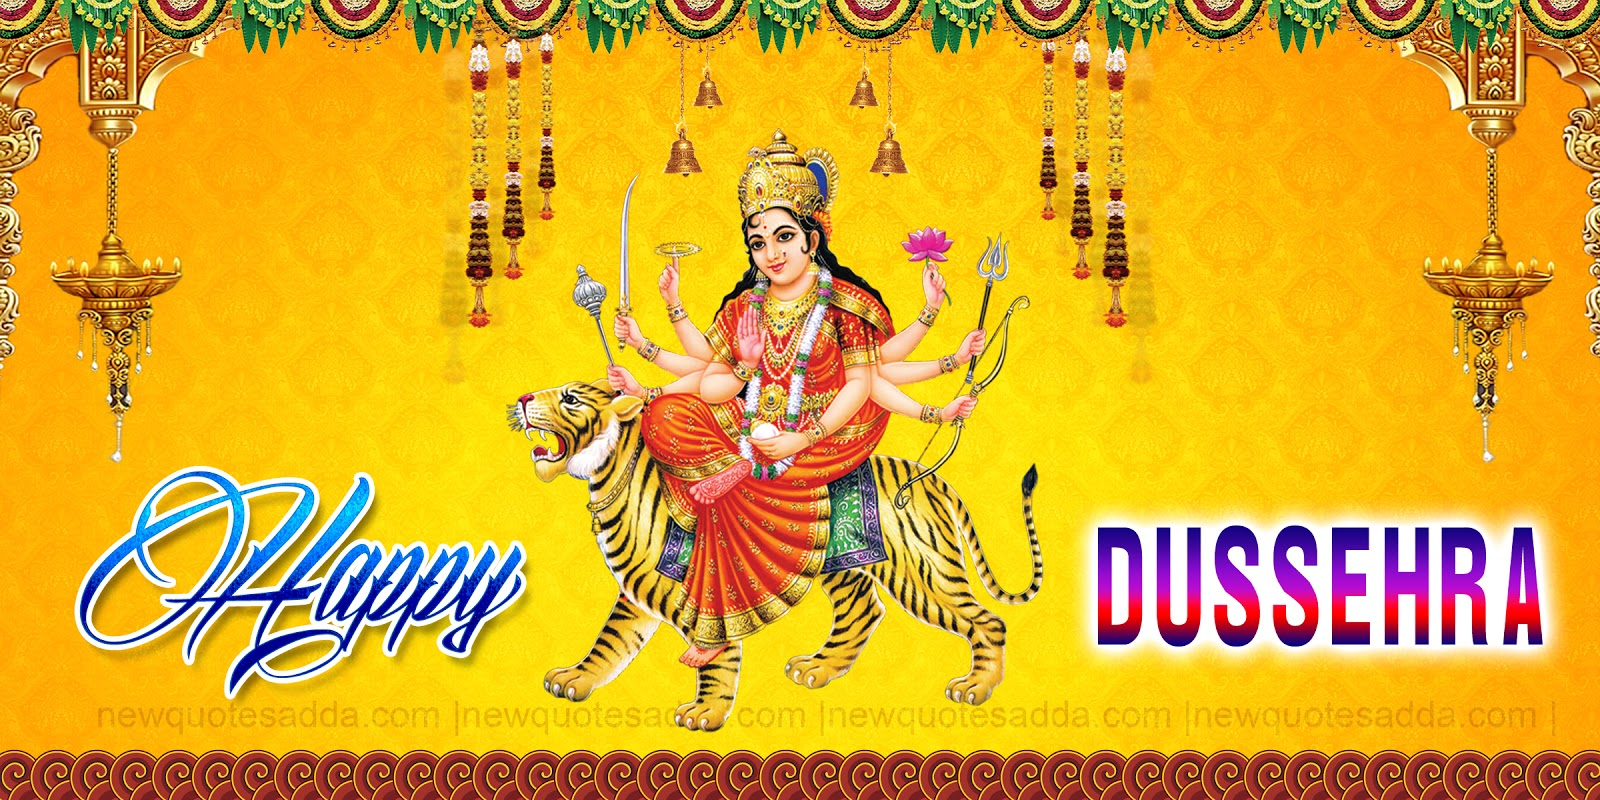 Happy Dasara Latest Text Messages And Greetings Newquotesadda